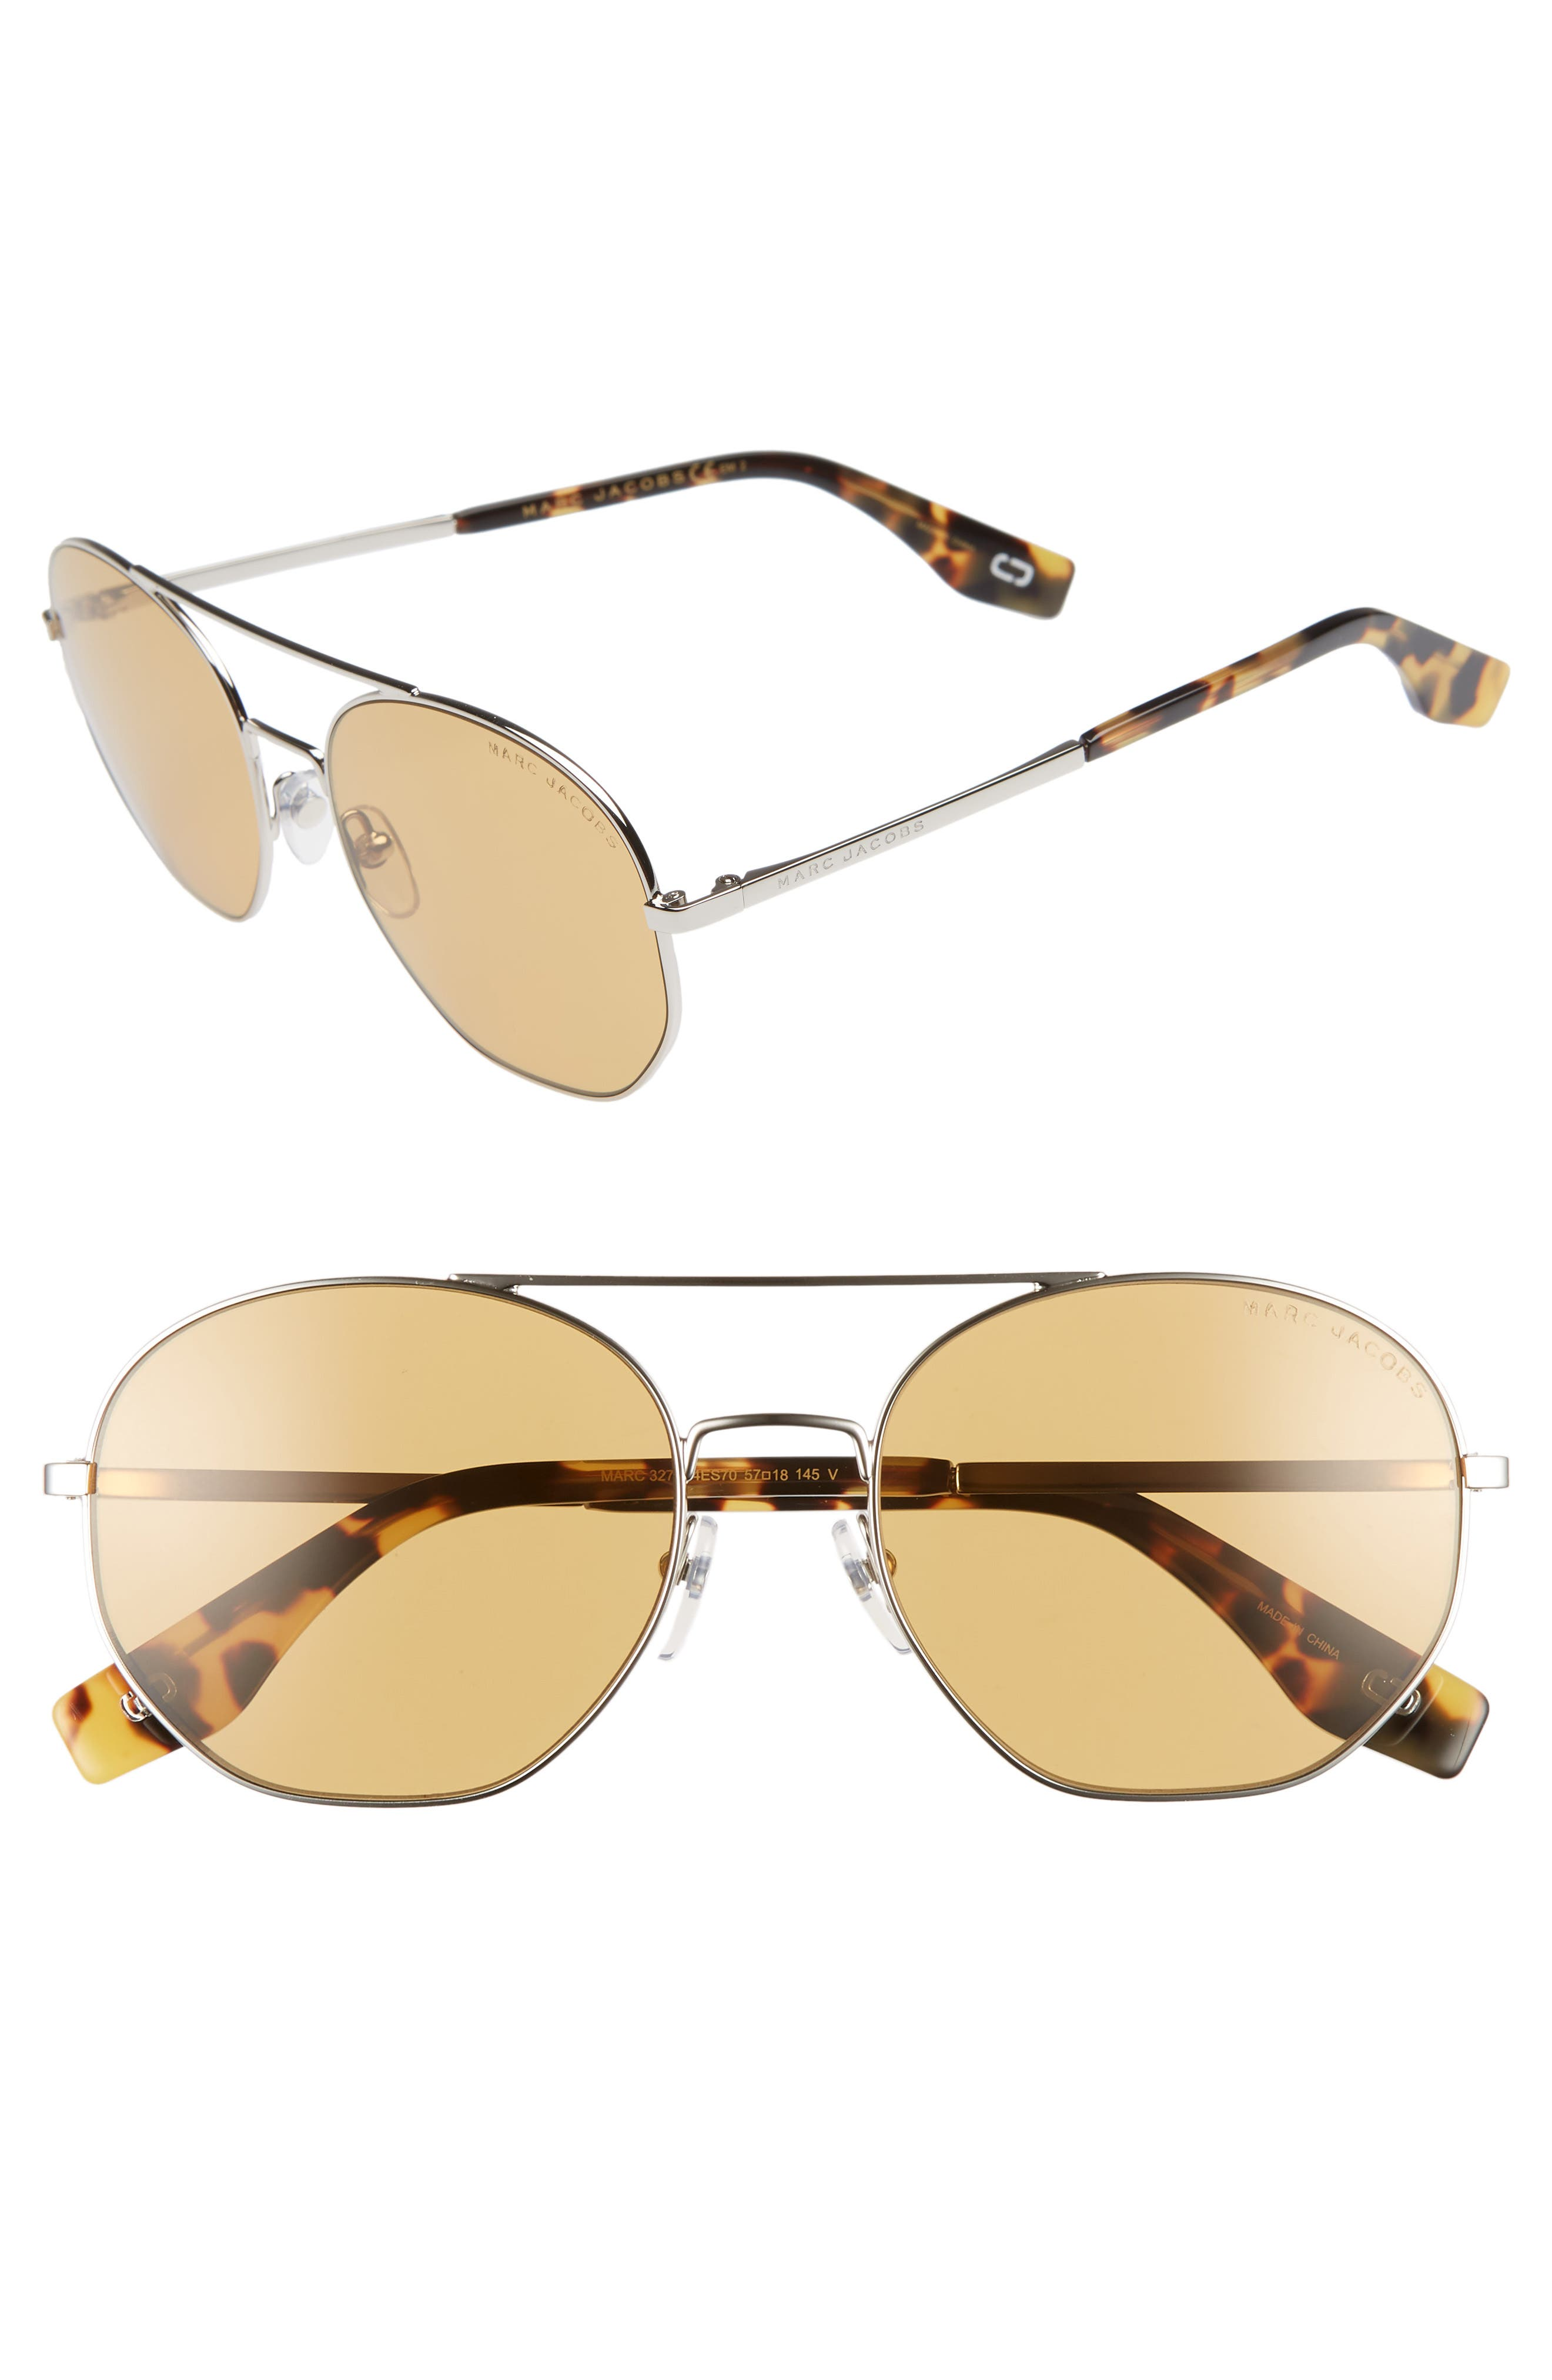 57mm Round Aviator Sunglasses,                             Main thumbnail 1, color,                             SILVER/ BROWN